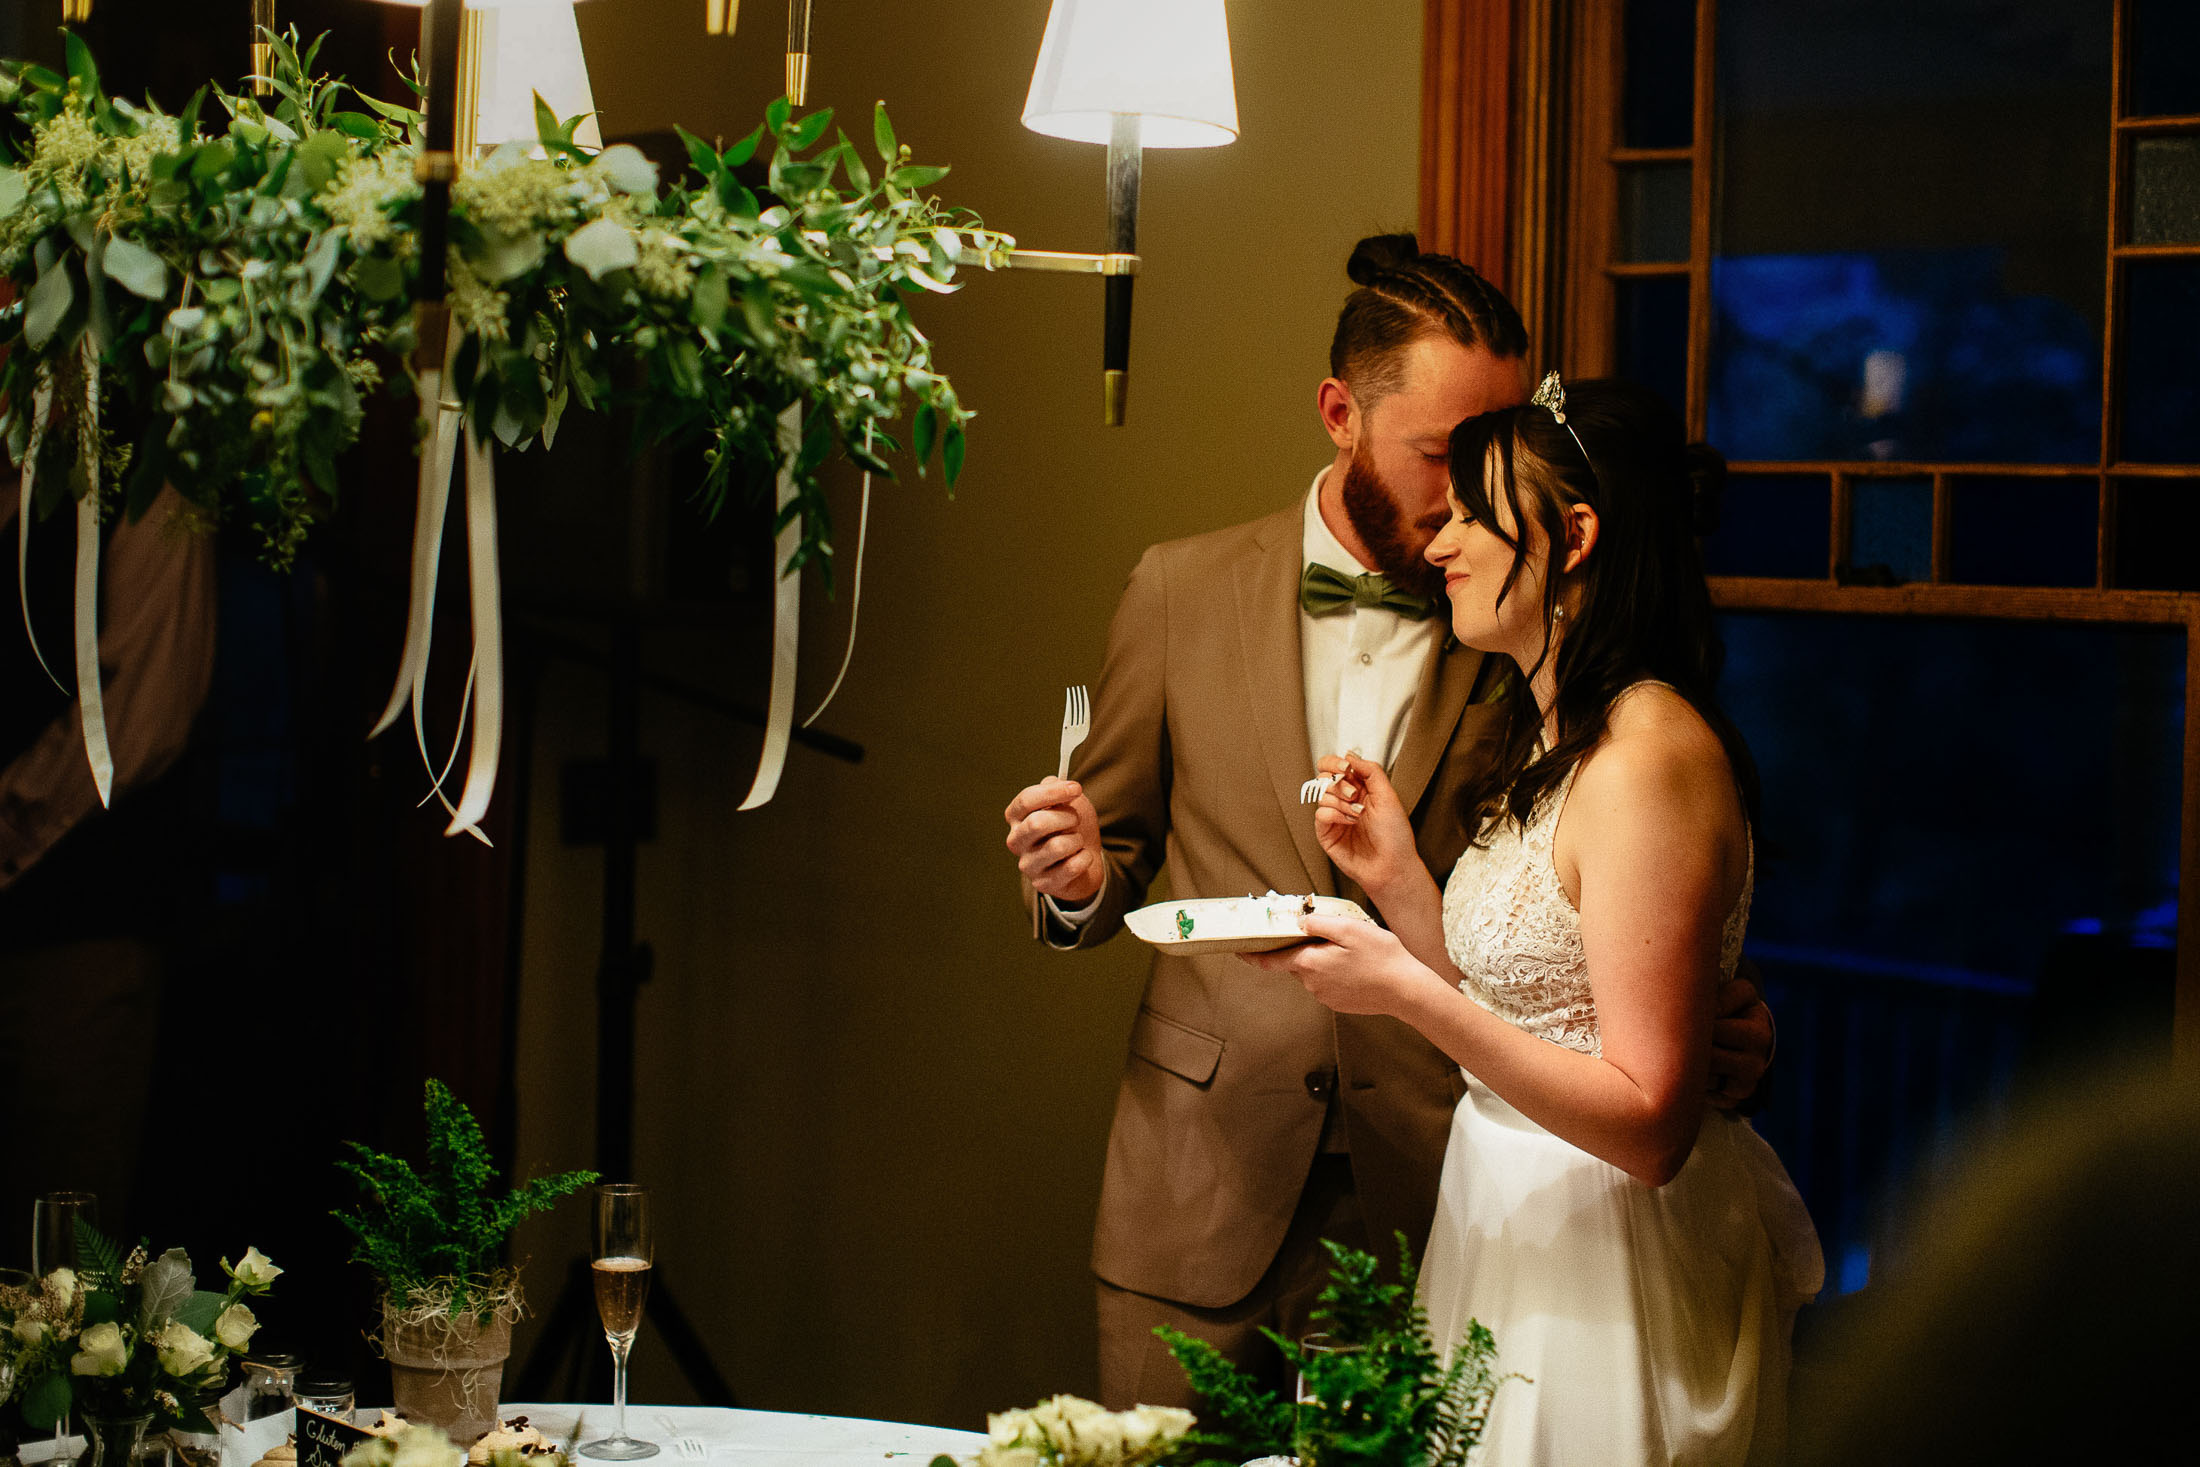 Couple kiss and hold plate with wedding cake during wedding reception at the Outlook Lodge.